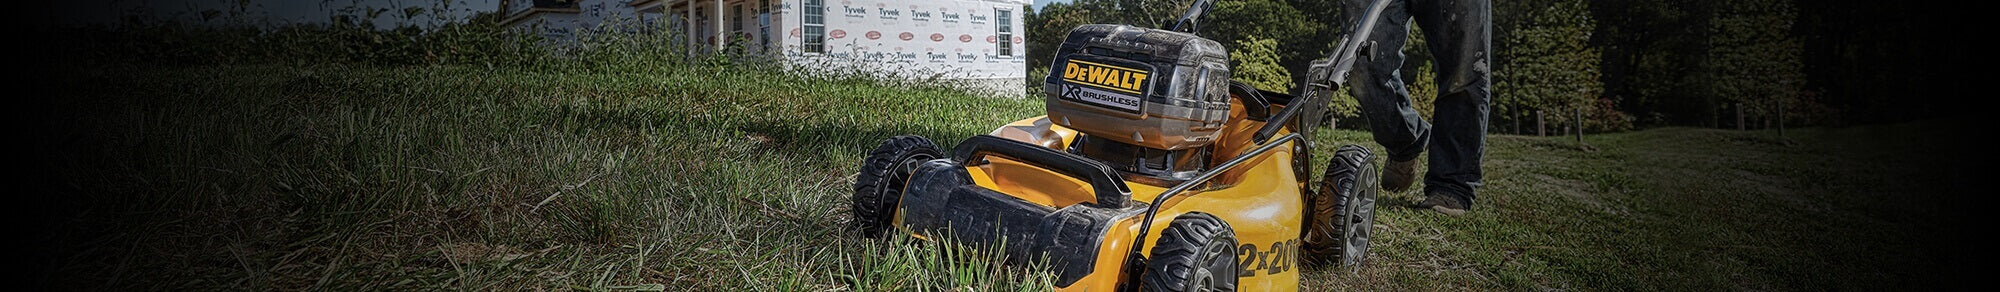 Dewalt Lawnmower